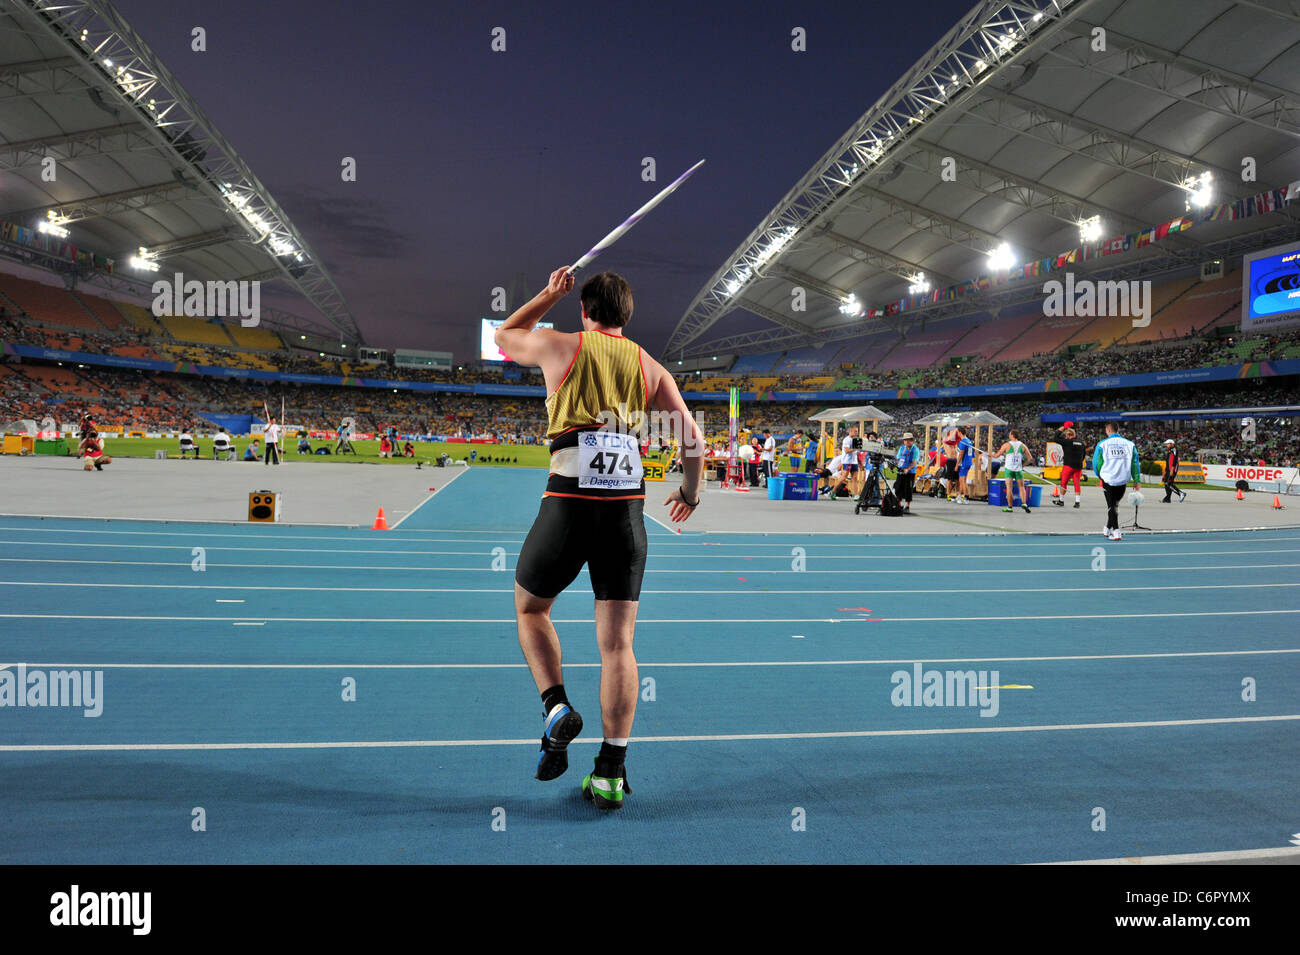 The ambiance shot of the 13th IAAF World Championships in Athletics. - Stock Image